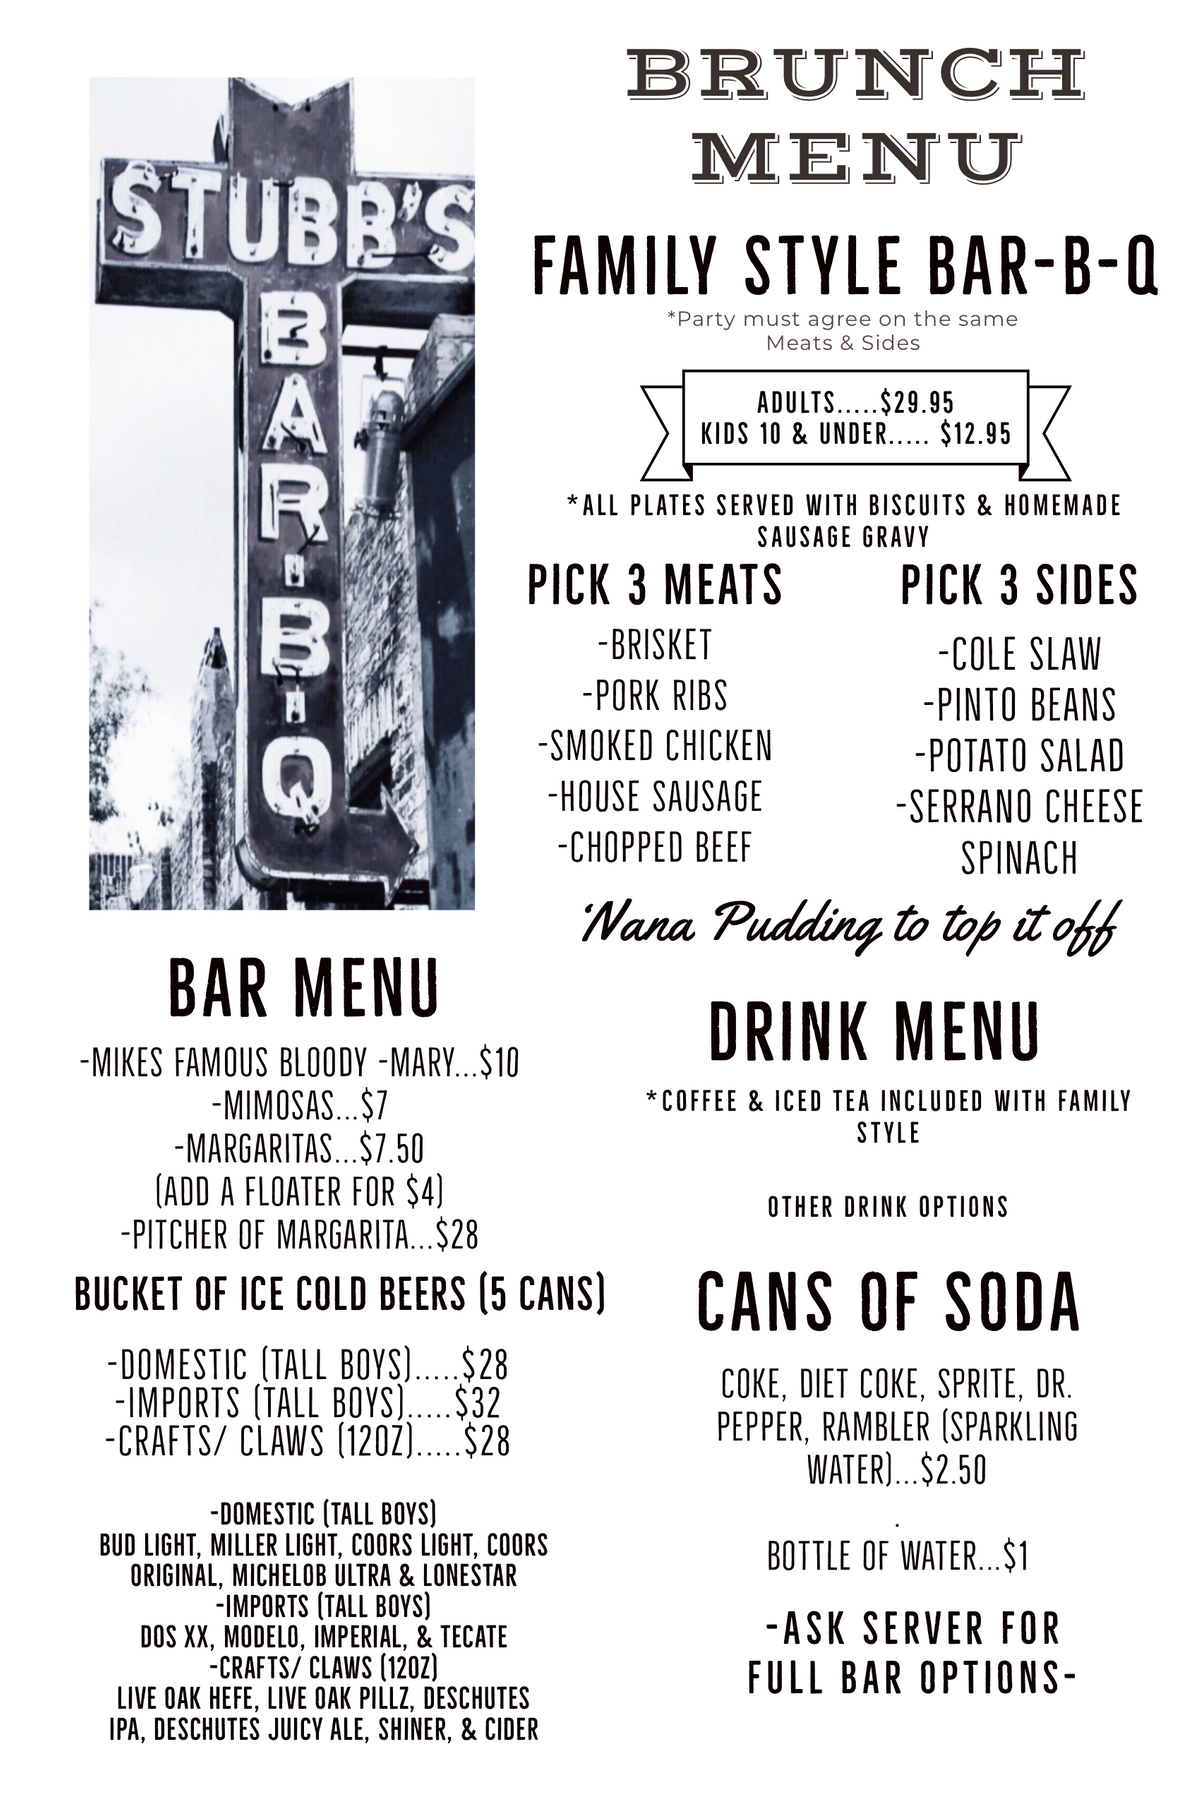 GospelBrunch_Menu_Stubbs_0620.PNG